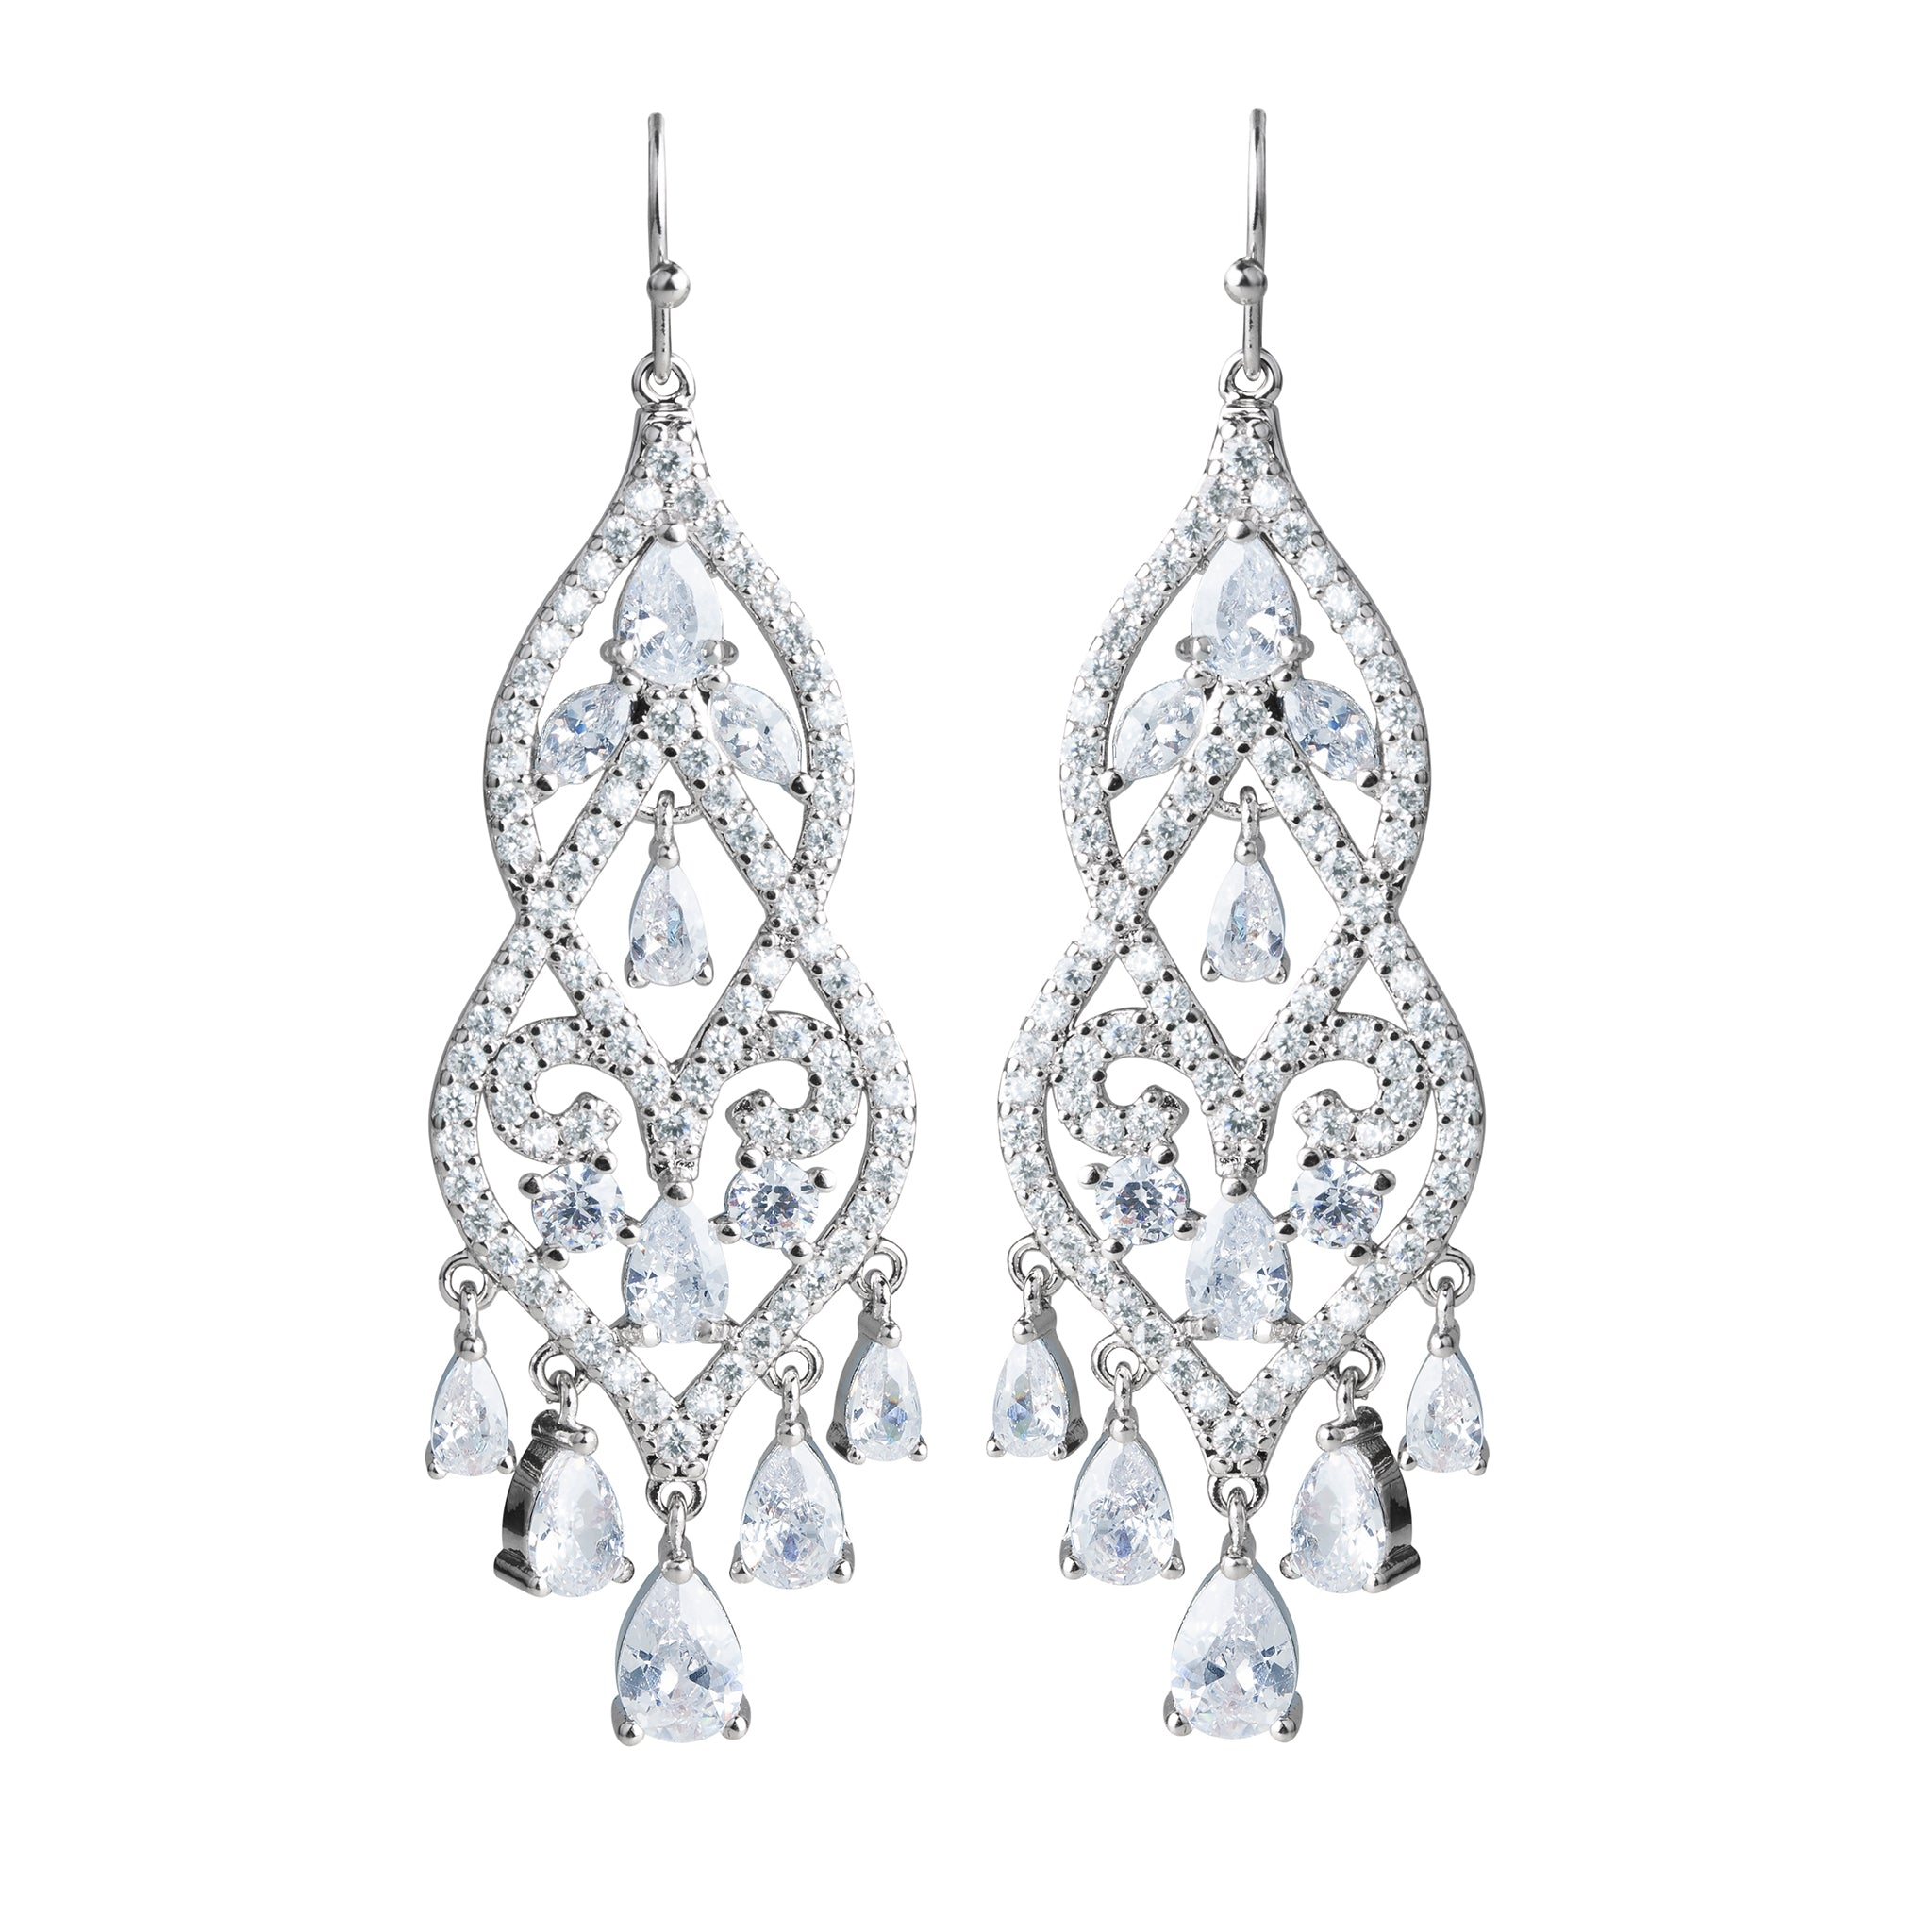 Statement Vintage Chandelier Earrings